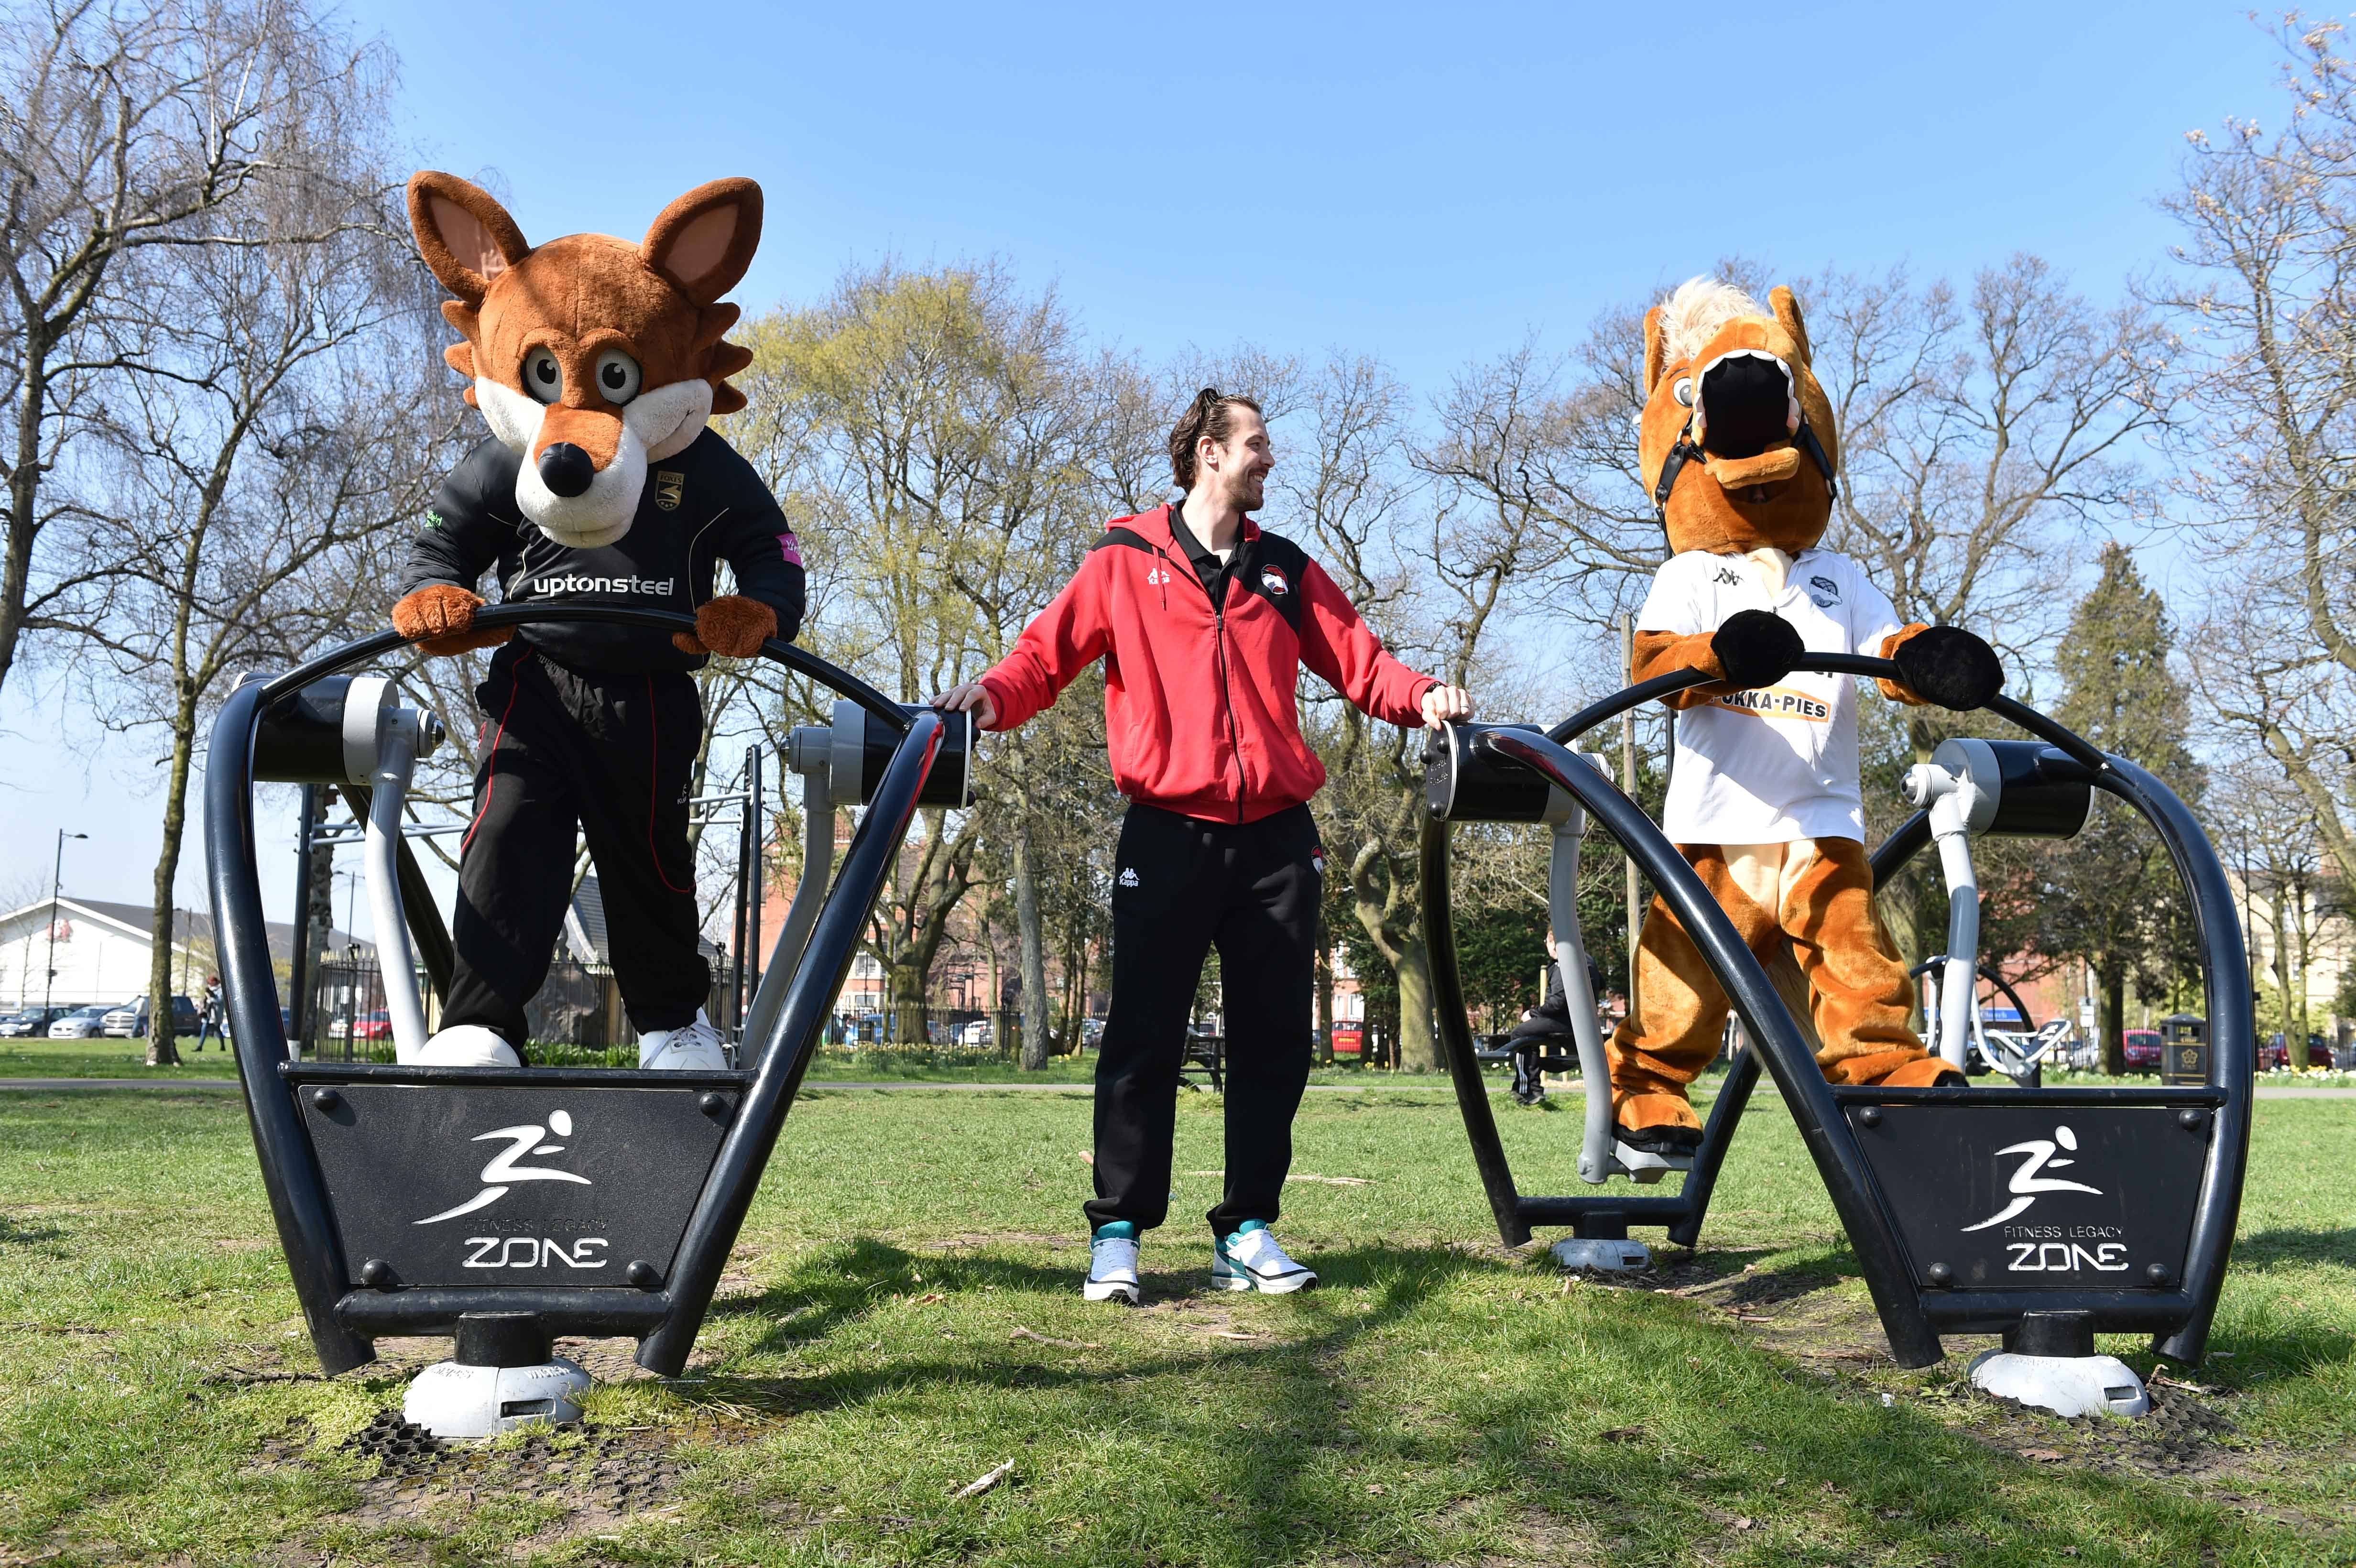 Leicester's sporting mascots flex their muscle in outdoor gym competition